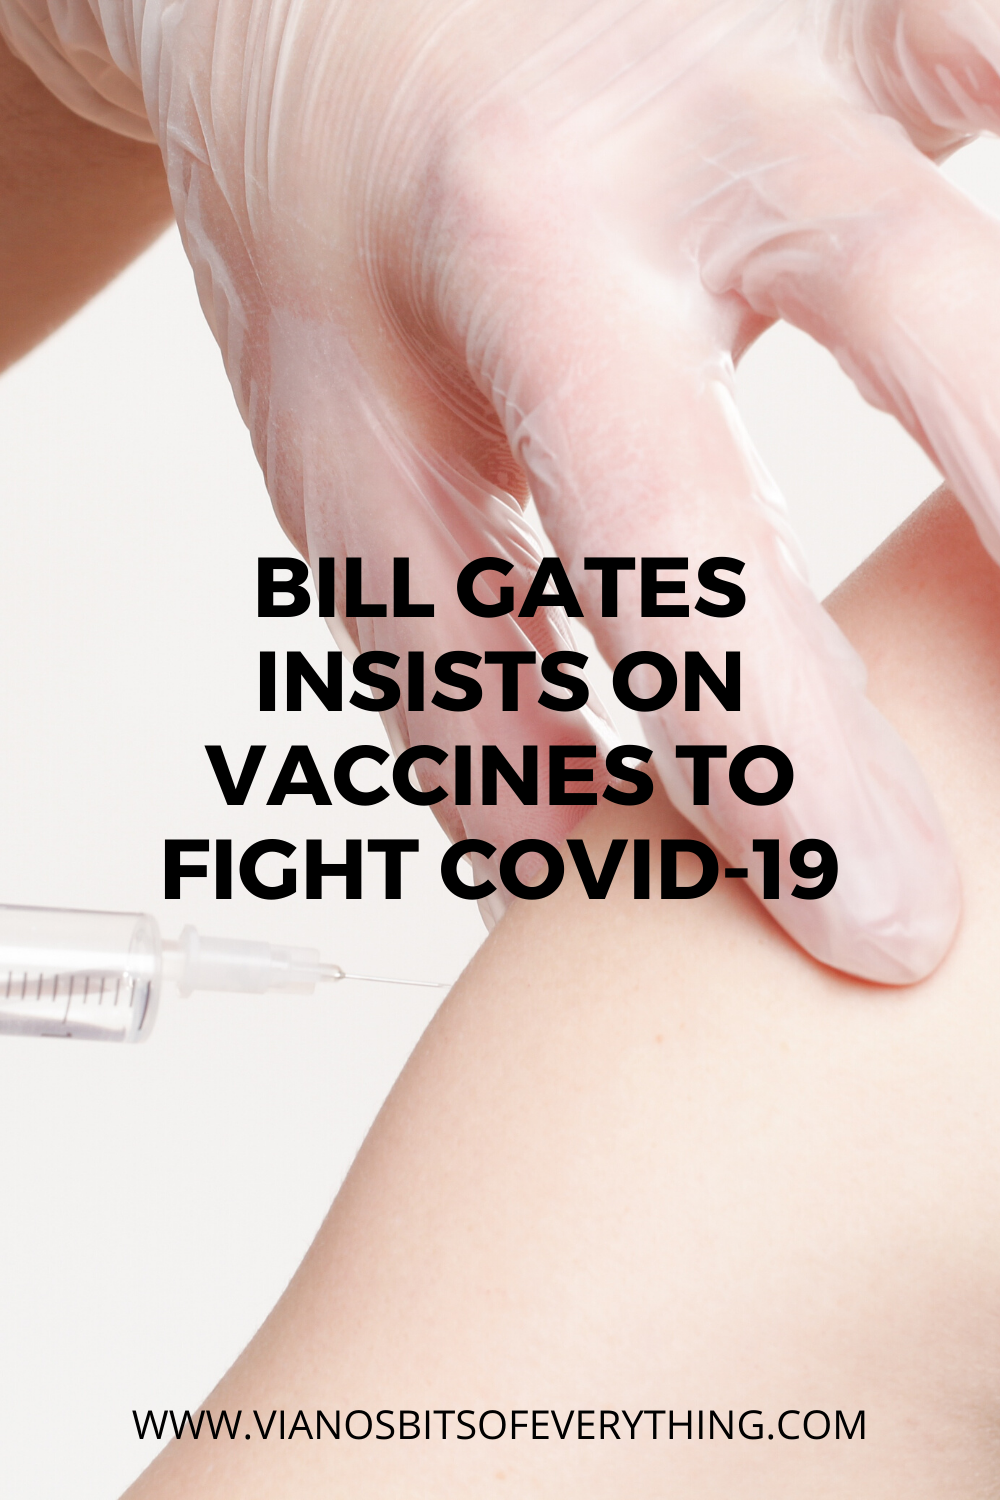 Bill Gates Insists On Vaccines To Fight Covid-19